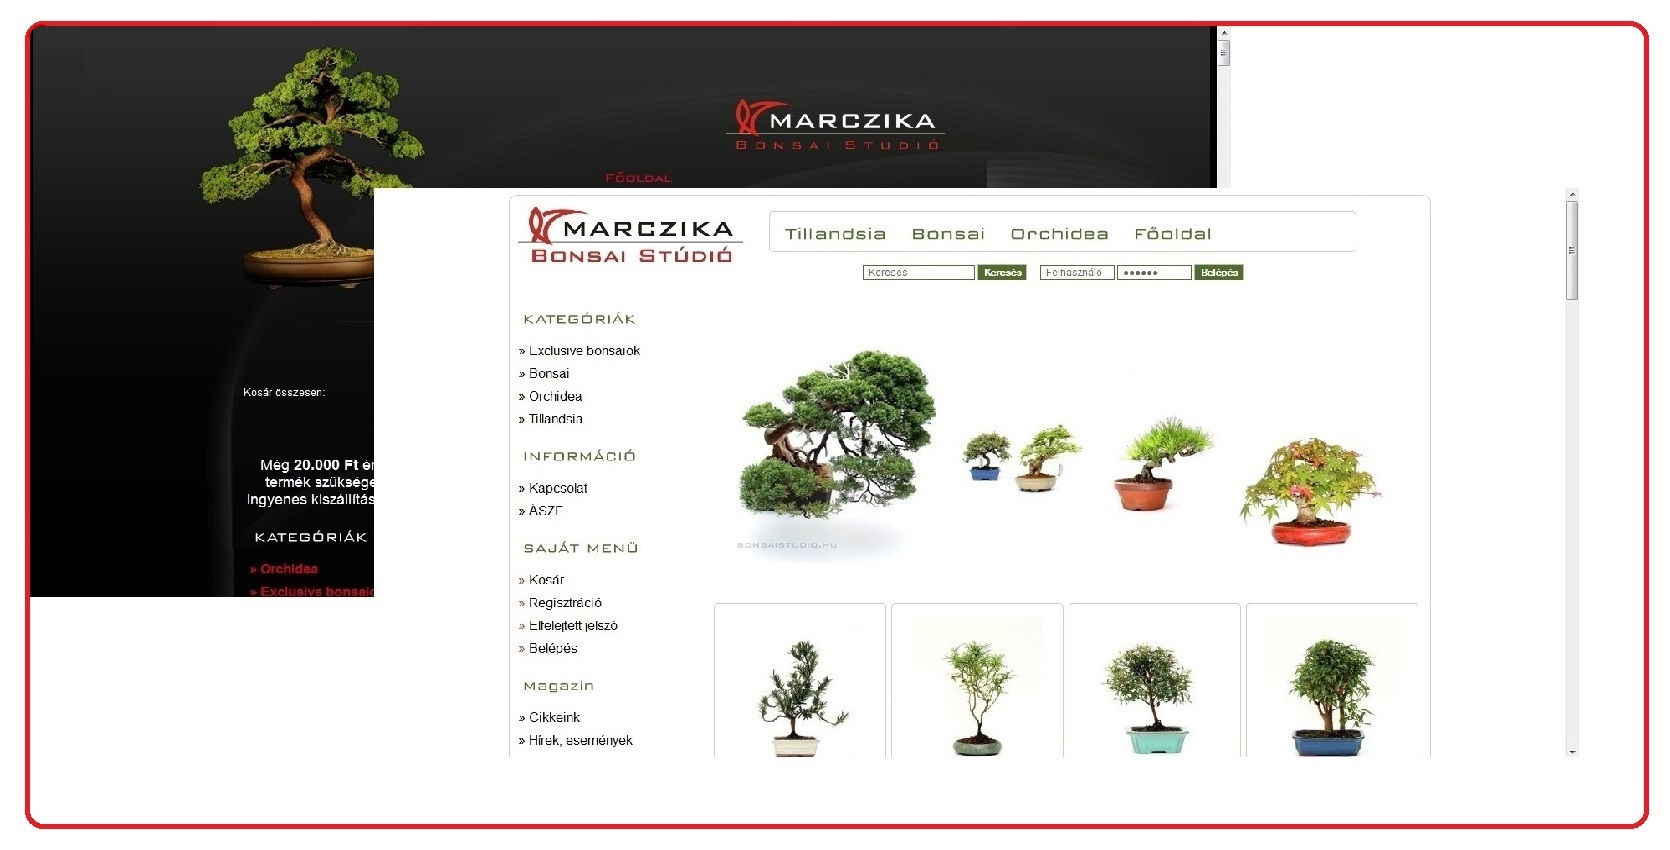 bonsai webaruhaz bonsai webshop internetes bonsai vasarlasi lehetoseg